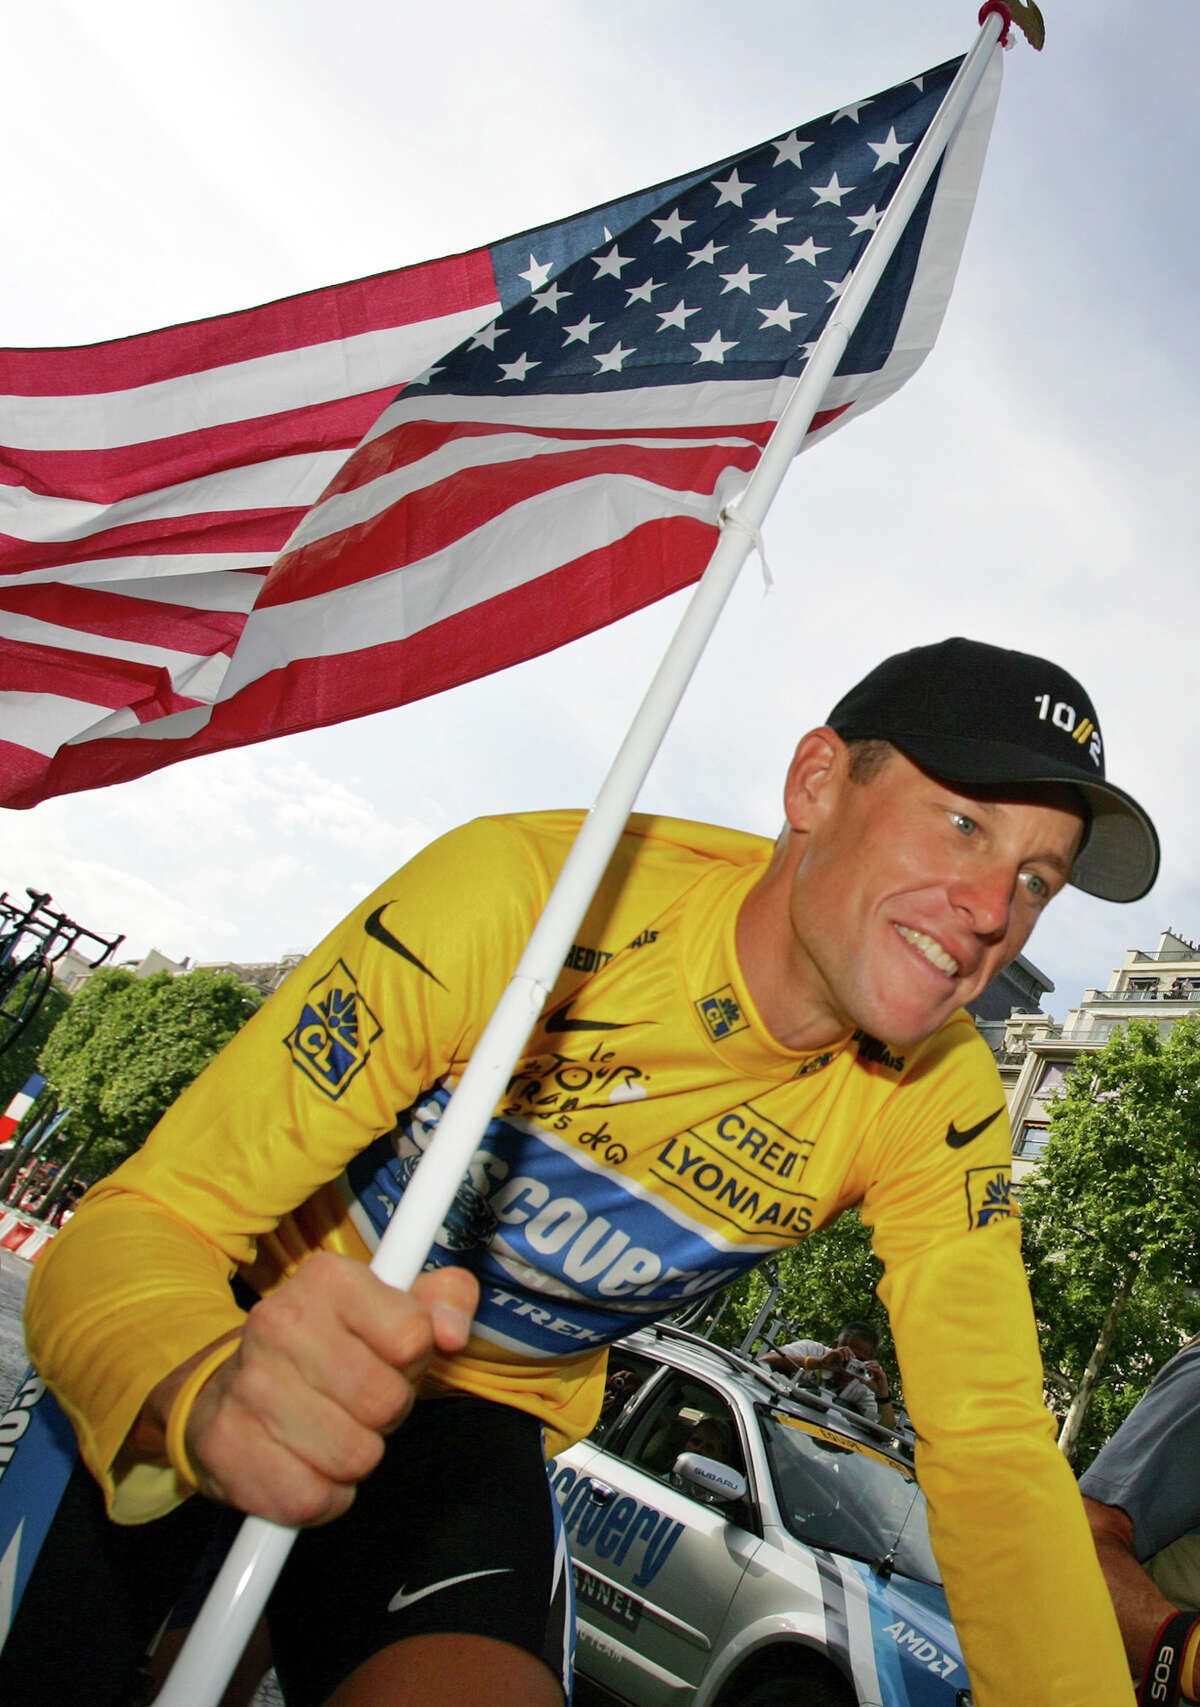 In 2005, Armstrong carried the U.S. flag during a victory parade on the Champs Elysees after winning his seventh straight Tour de France.